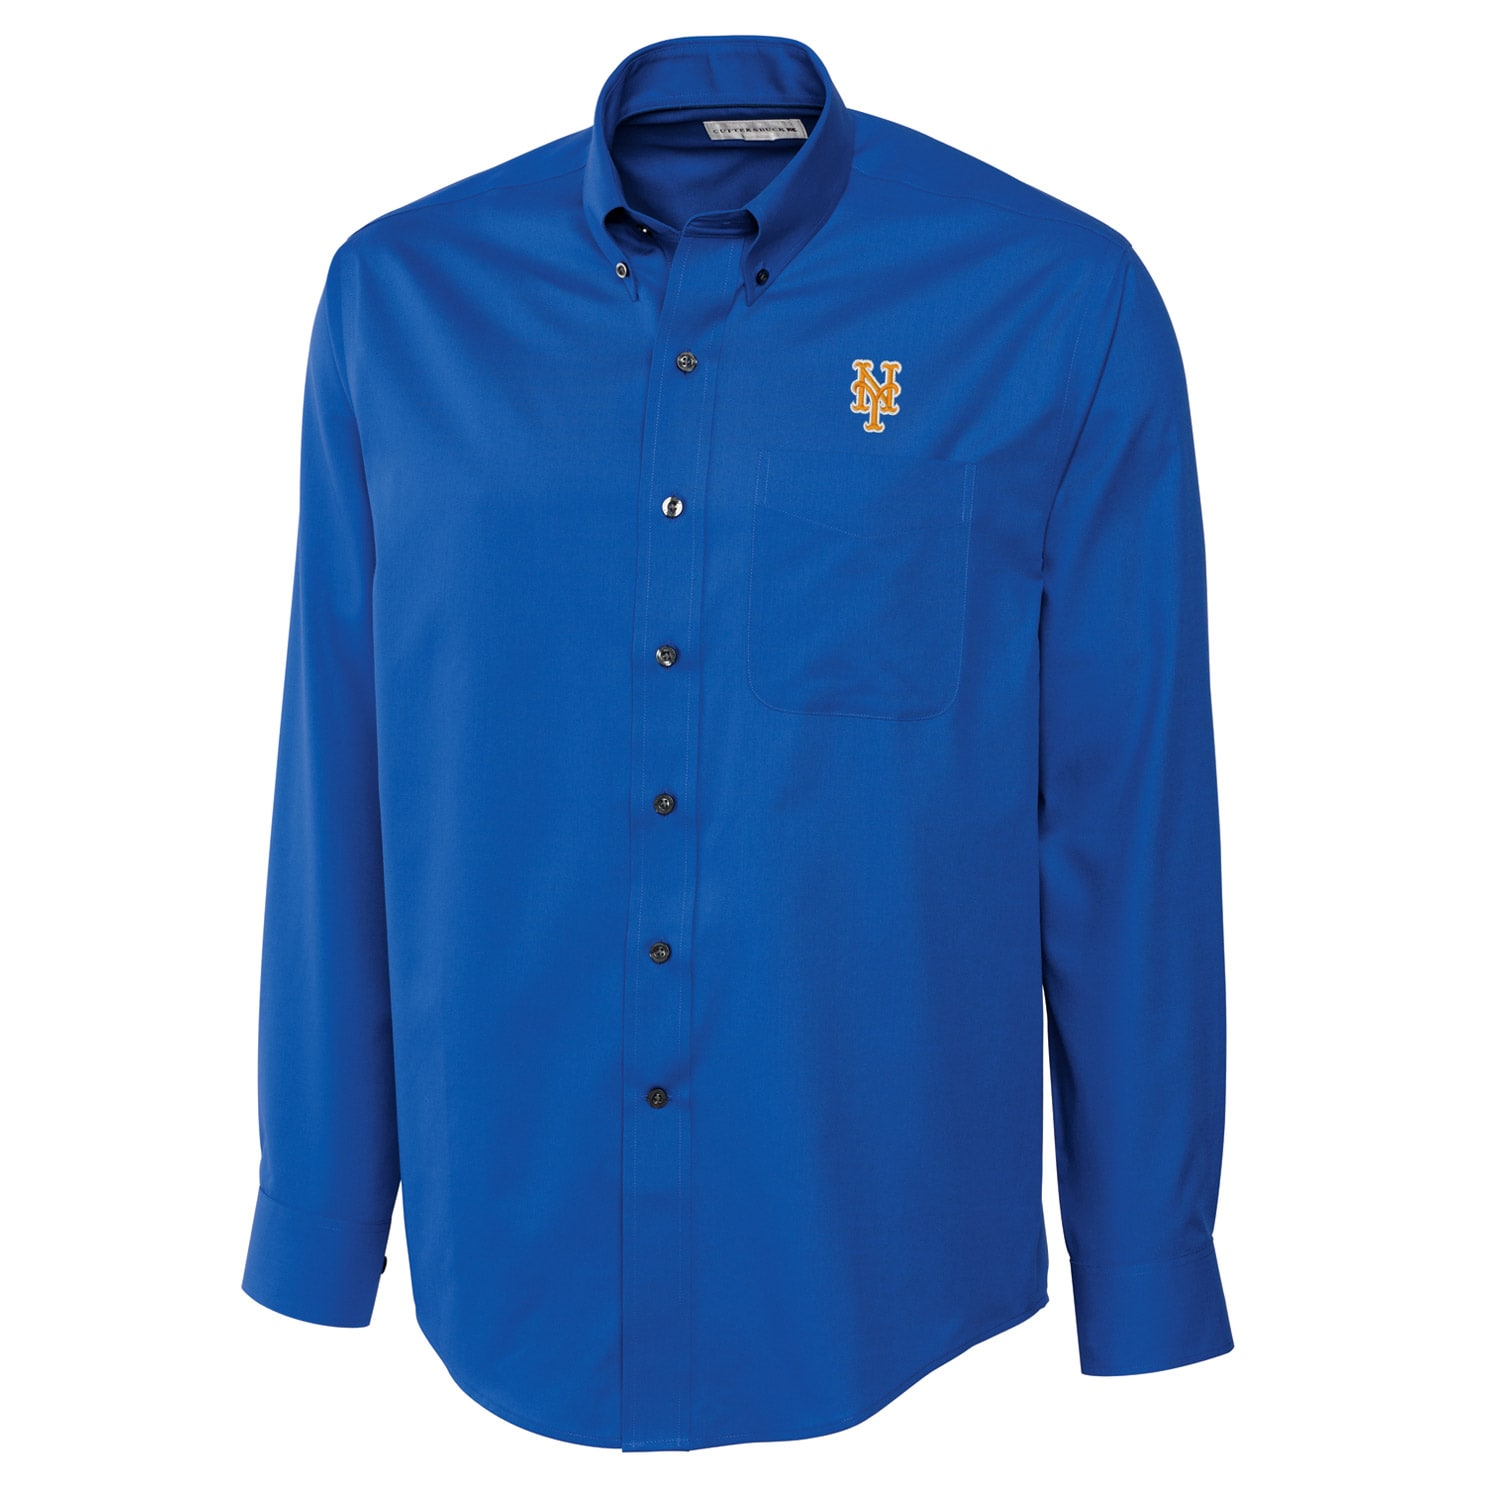 New York Mets Cutter & Buck Big & Tall Epic Easy Care Fine Twill Long Sleeve Shirt - Royal